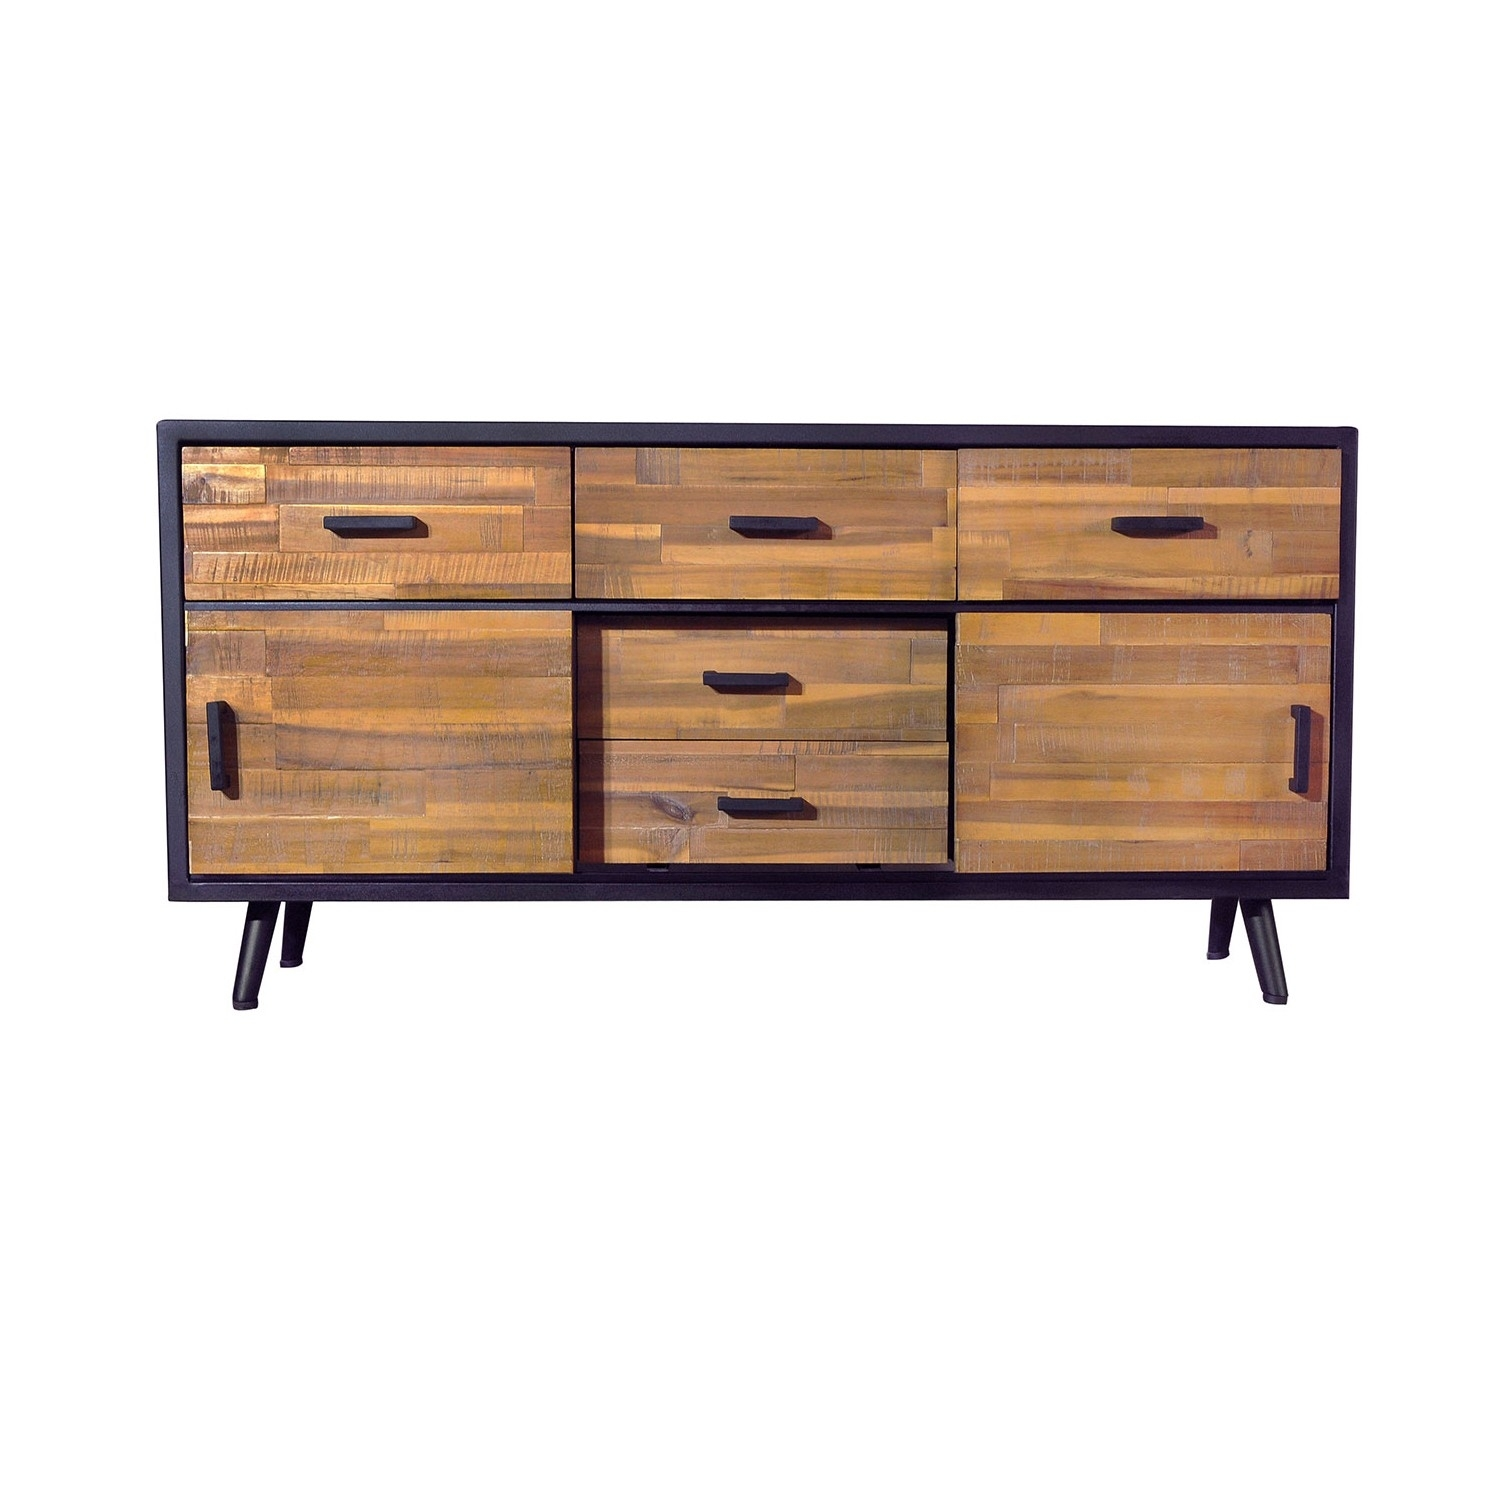 Buffets, Cabinets And Sideboards | Bois & Cuir With Regard To Metal Framed Reclaimed Wood Sideboards (View 14 of 30)